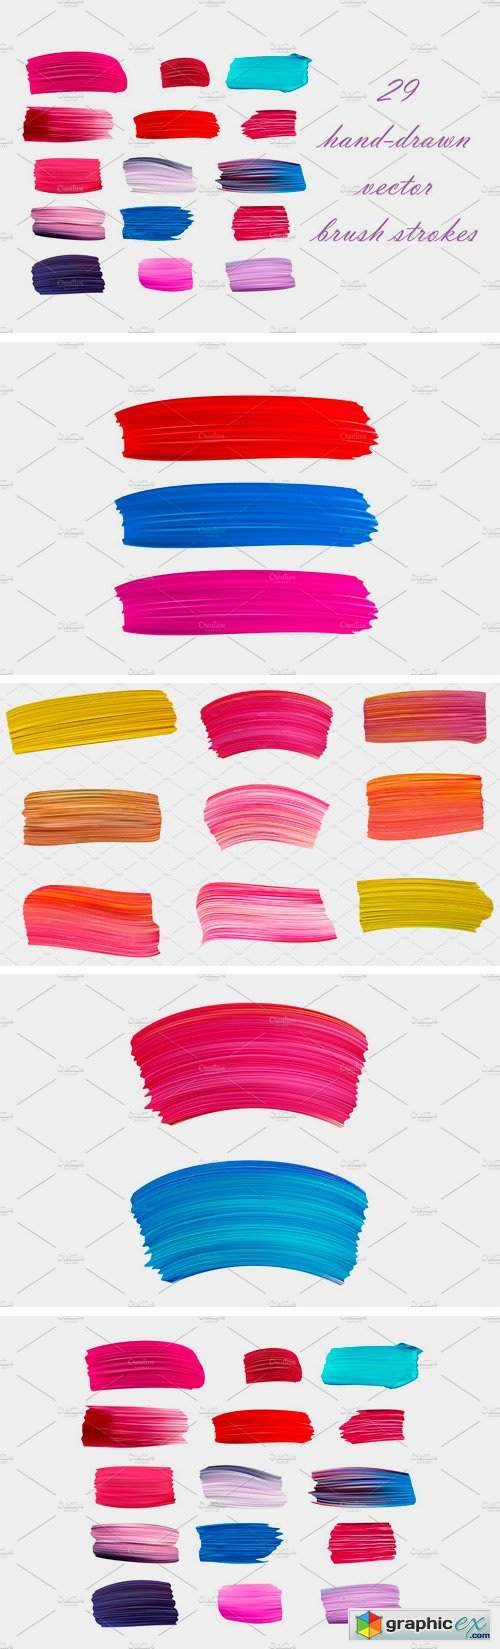 Hand-Drawn Vector Brush Strokes